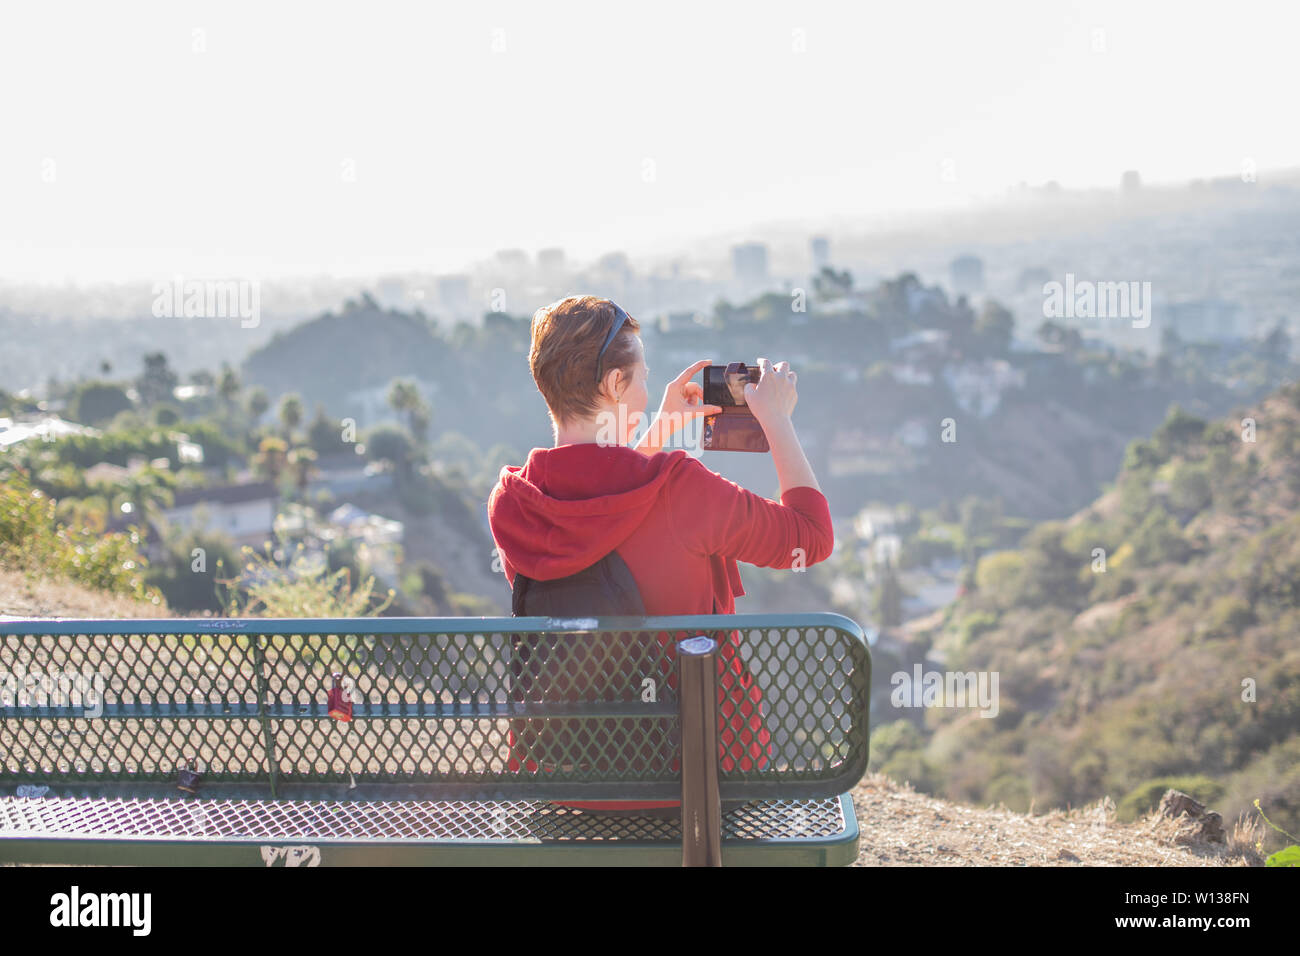 A young woman sitting on the bench on a hike and taking photos of the landscape, Los Angeles, California Stock Photo